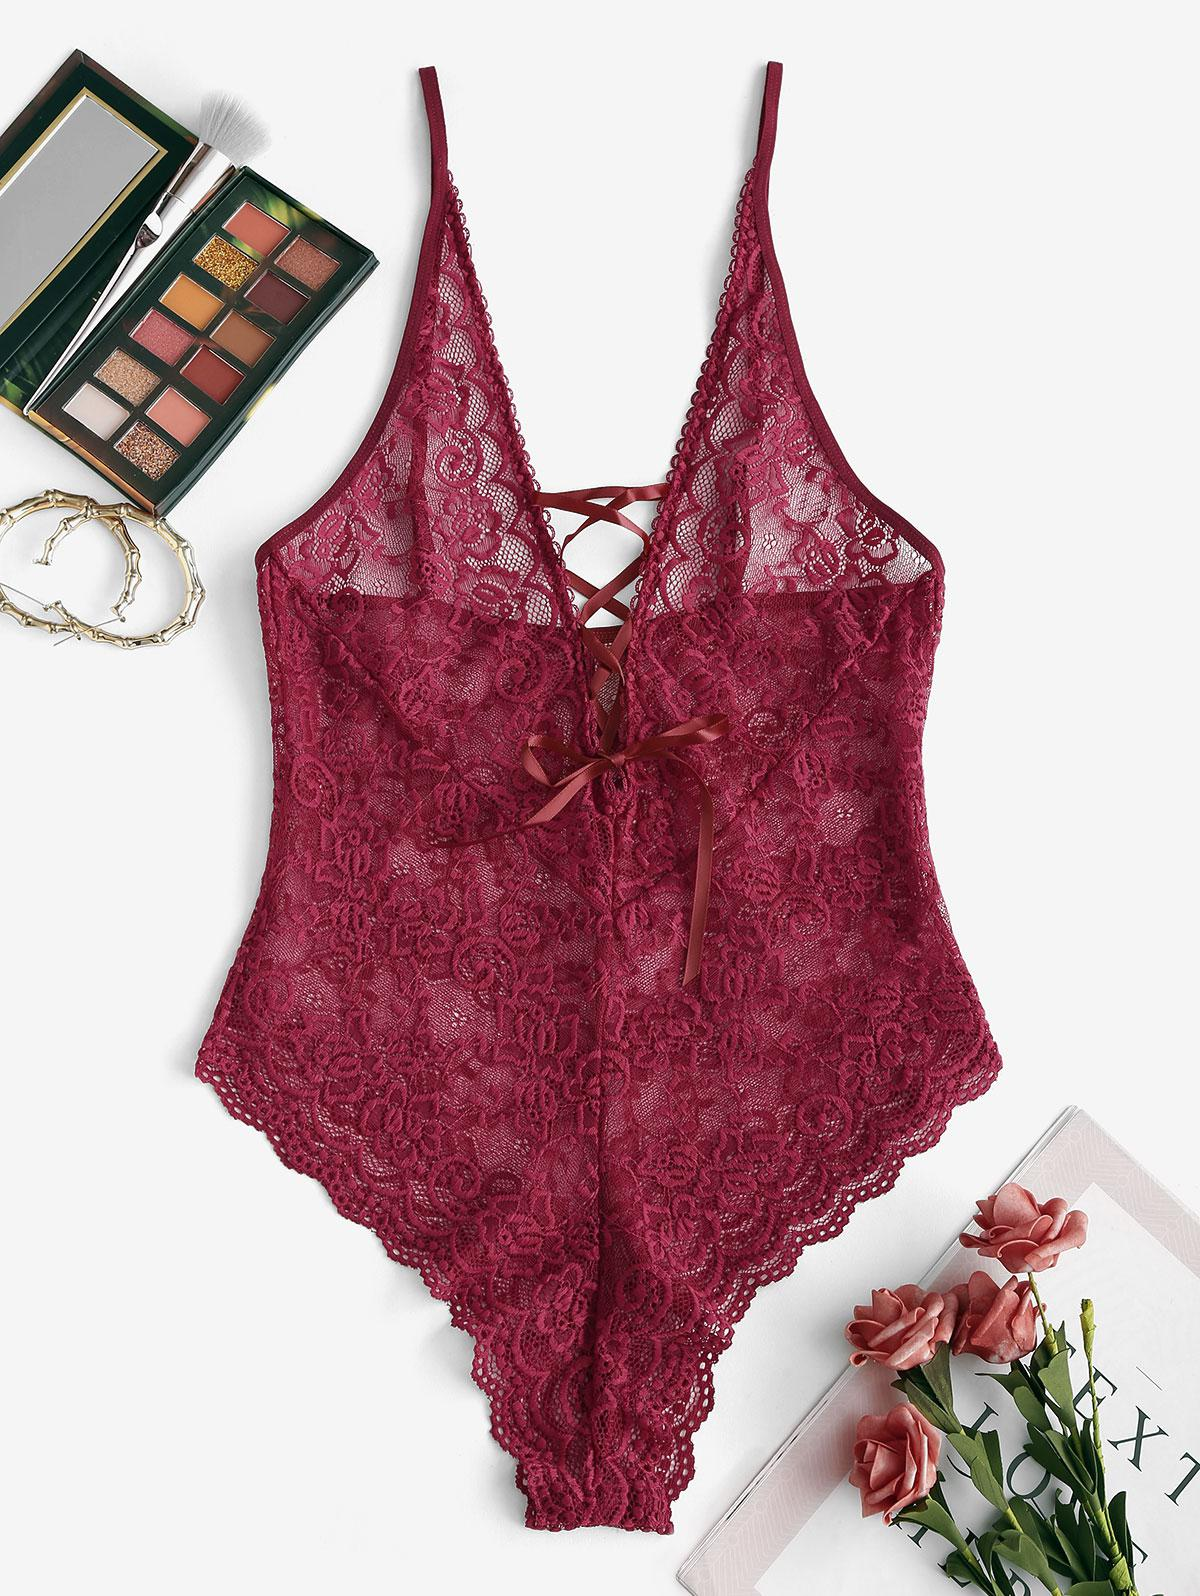 Scalloped Lace Backless Lace-up Lingerie Teddy